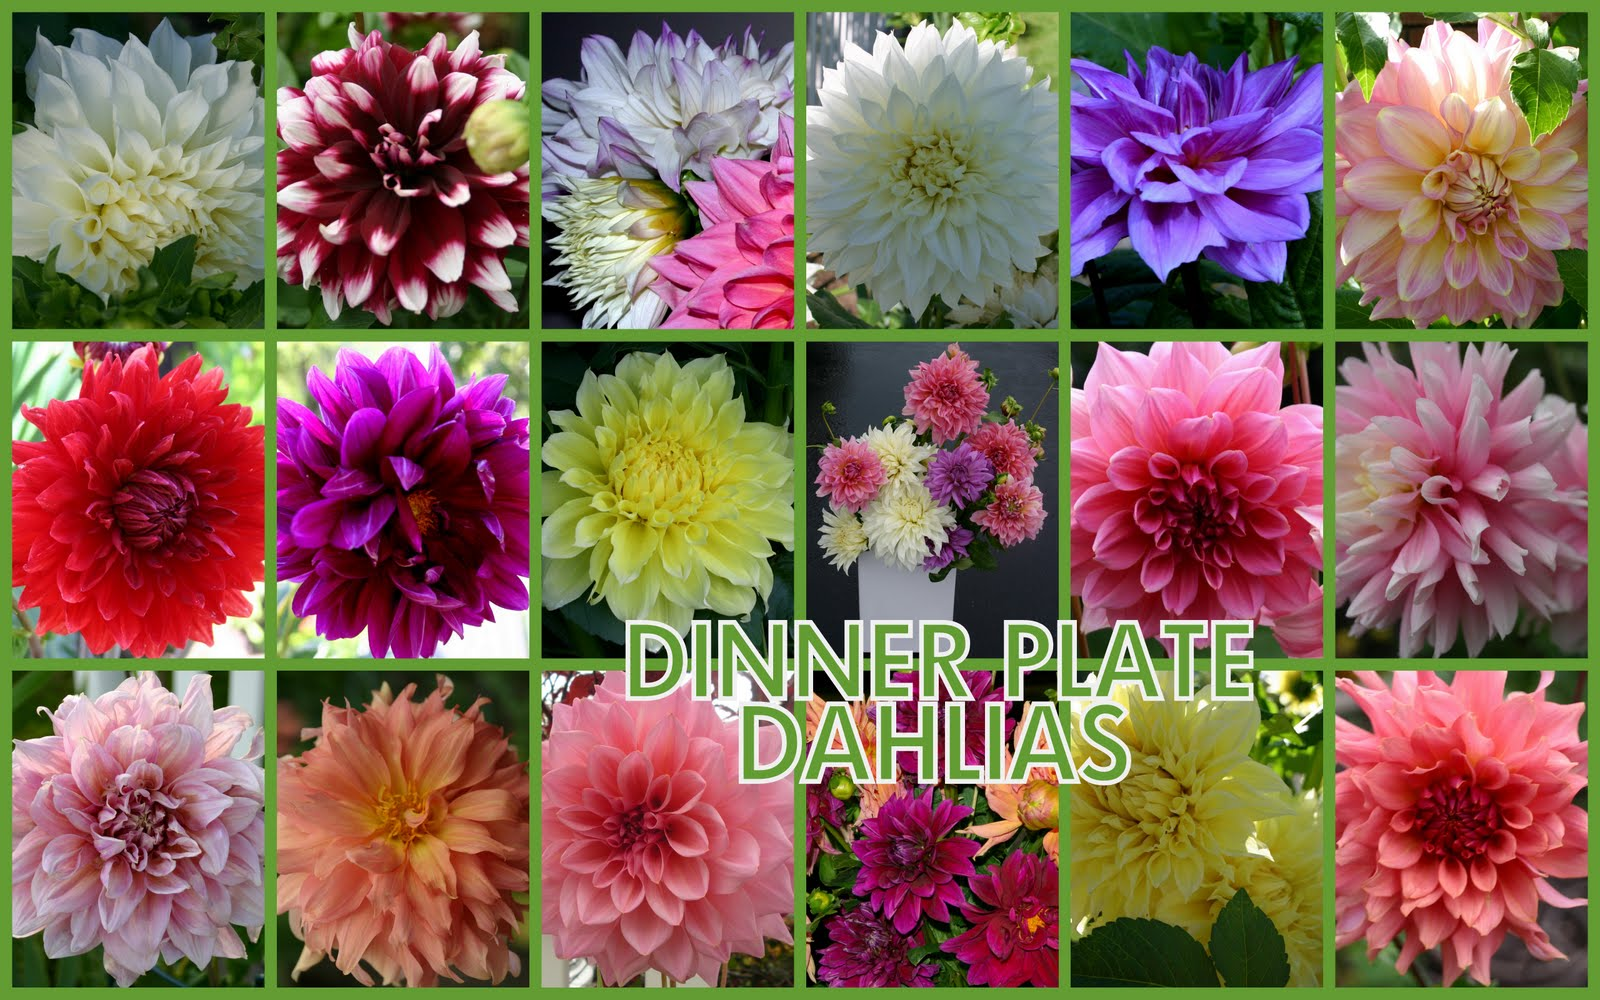 DINNER PLATE DAHLIAS & DINNER PLATE DAHLIAS - Sowing the Seeds